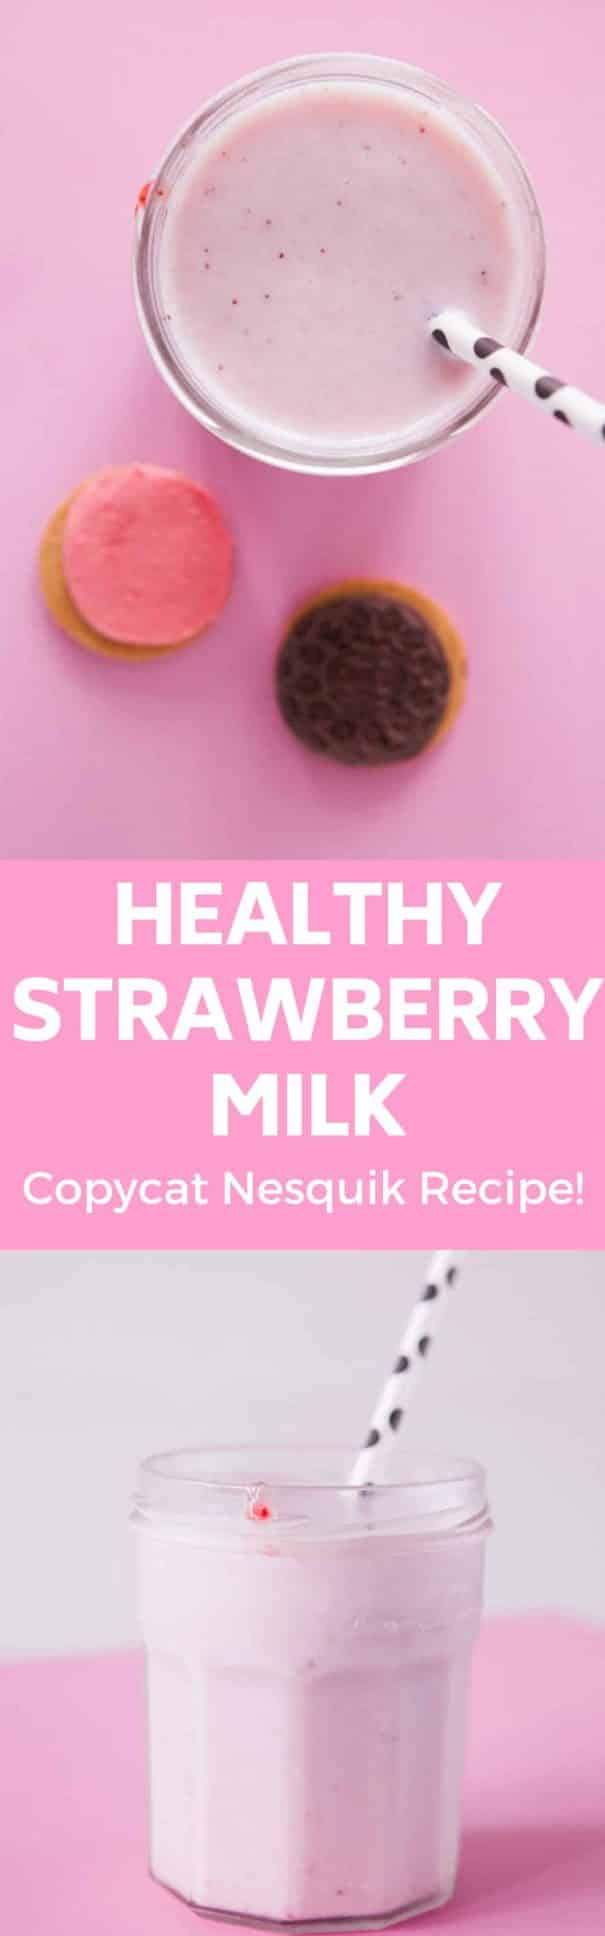 Natural homemade recipe for Nesquik Strawberry Milk using fresh strawberries.  This milk is easy to make, and much more healthy than the store bought version!  Also includes vegan strawberry milk option.